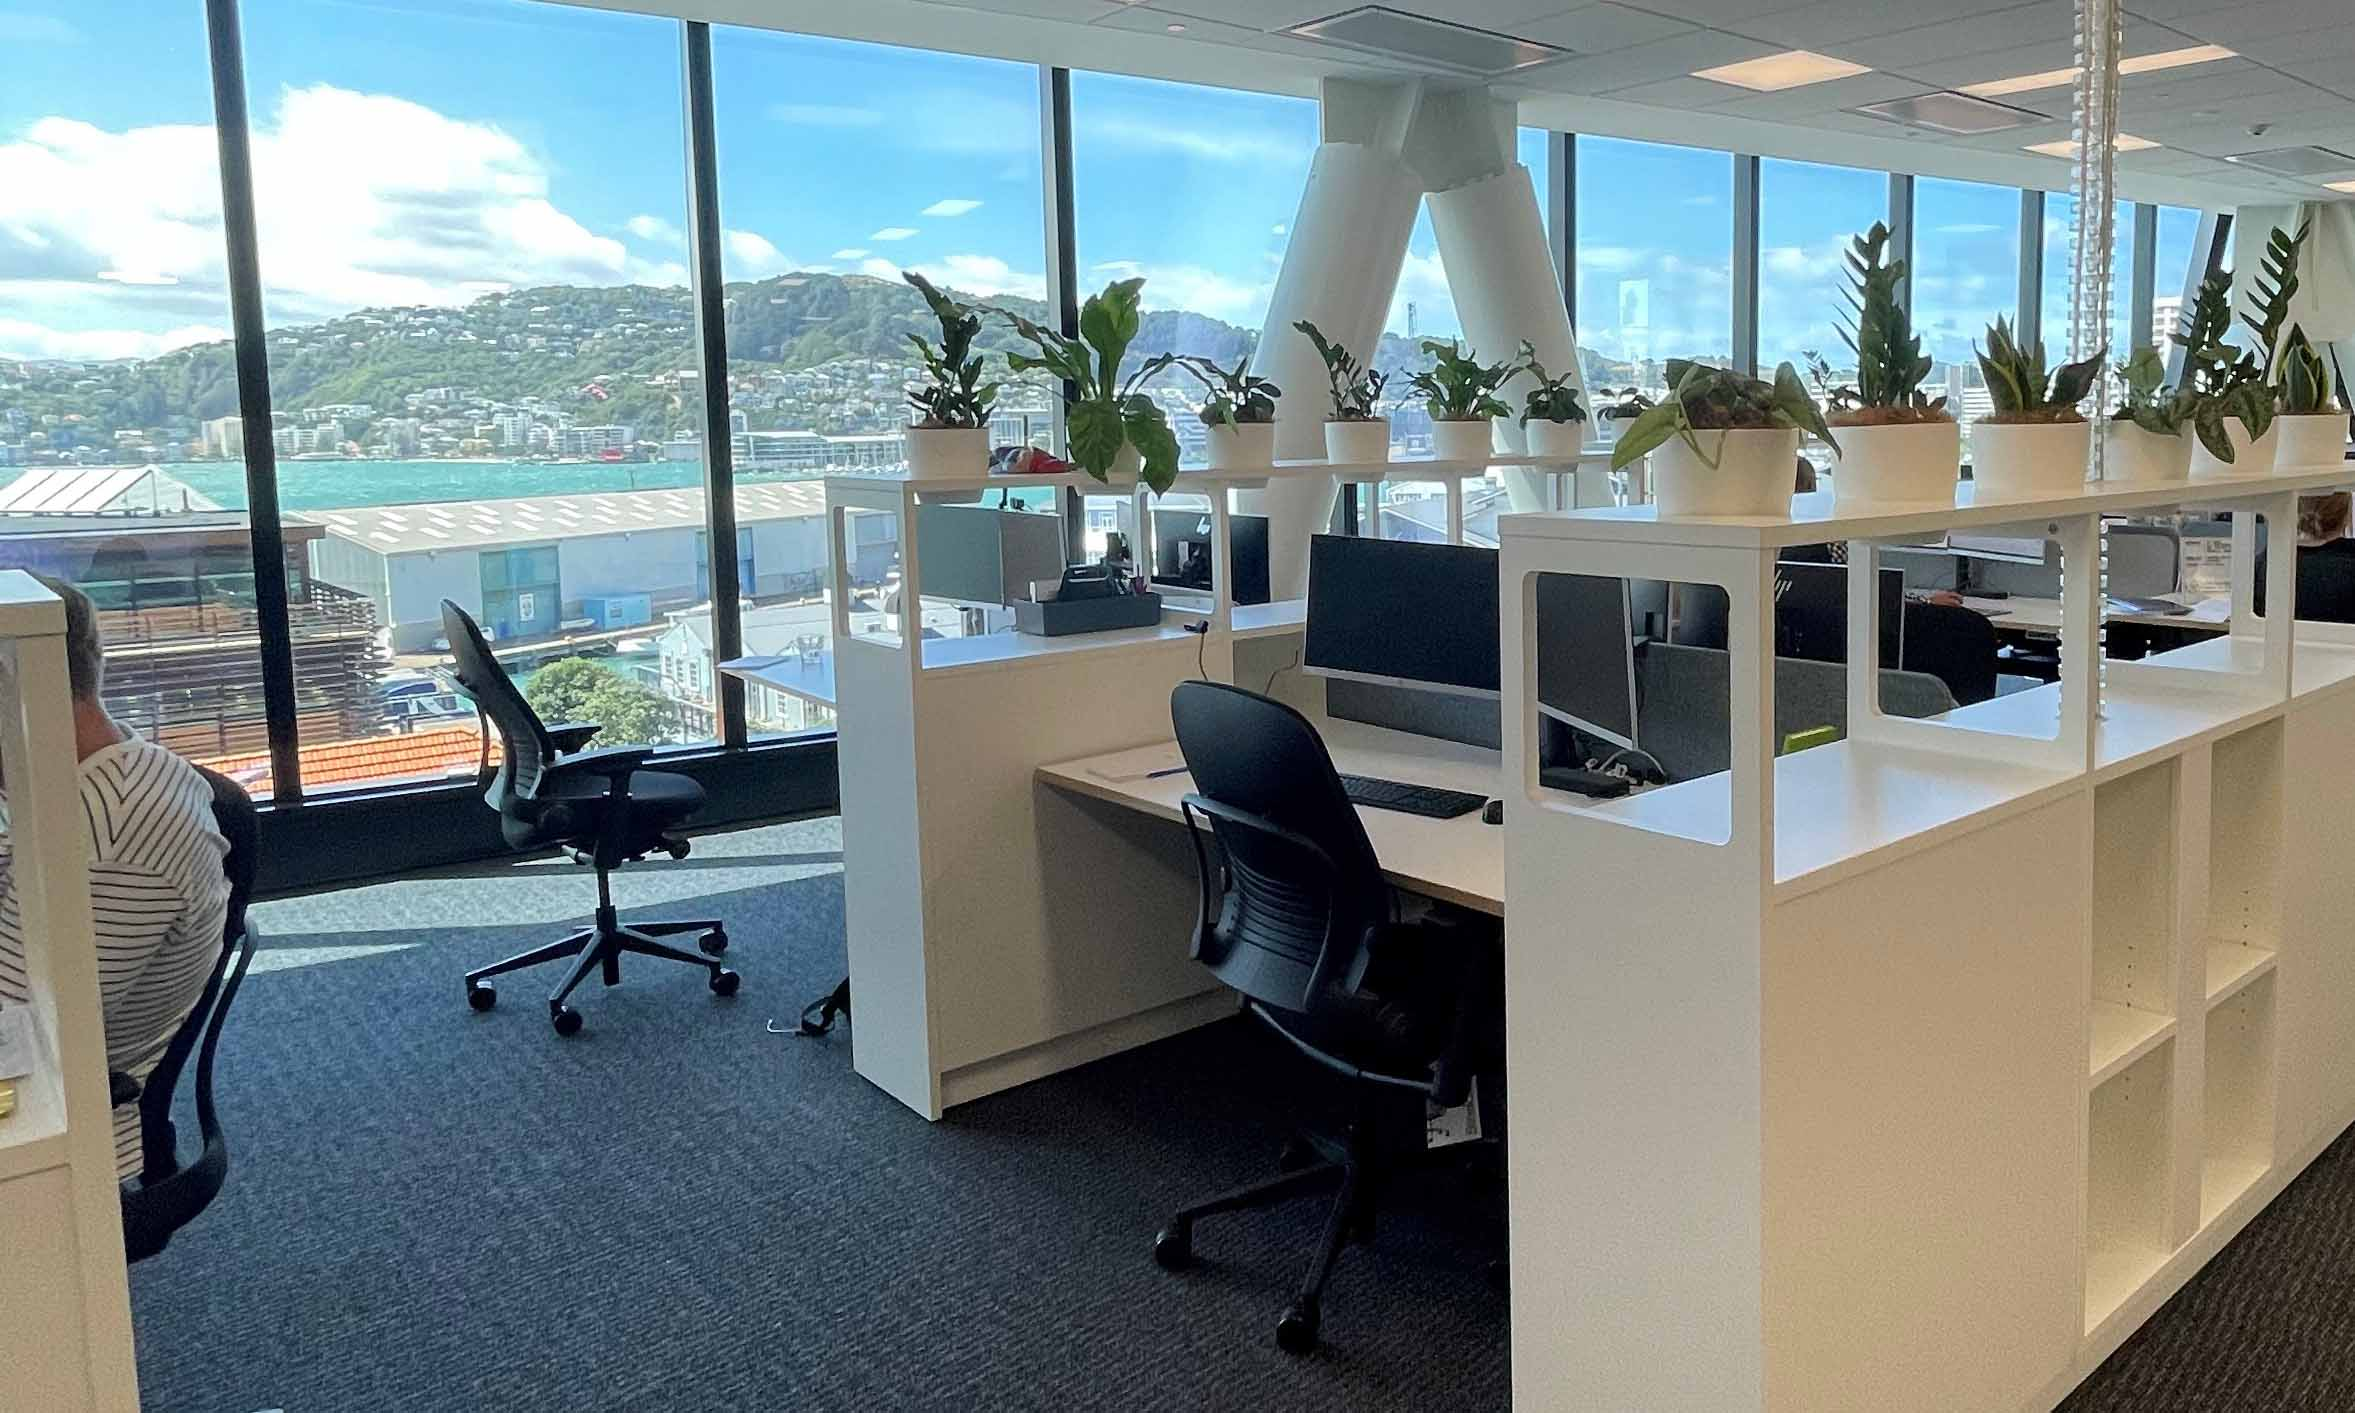 DLA Piper Wellington moves to new waterfront home